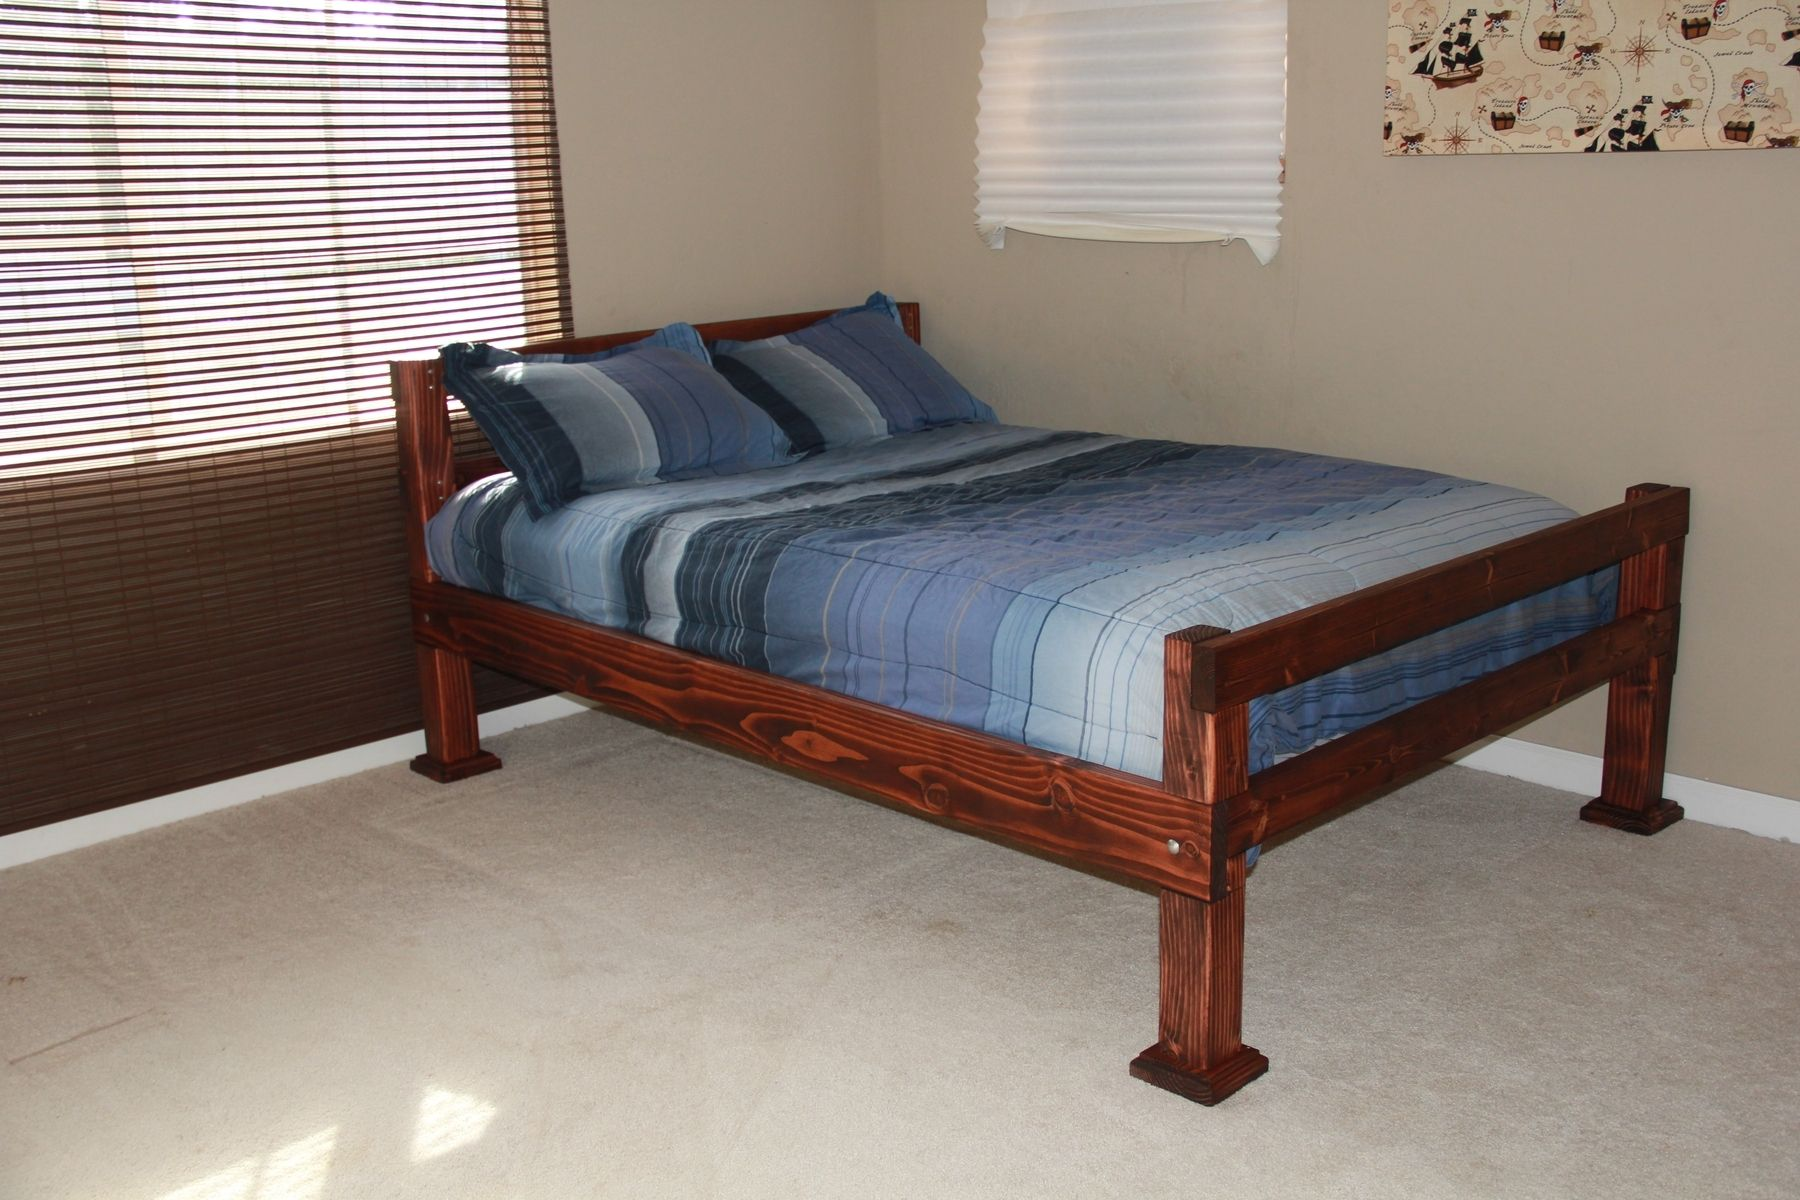 Custom Made Rustic Four Corner Post Full Size Bed by Scott